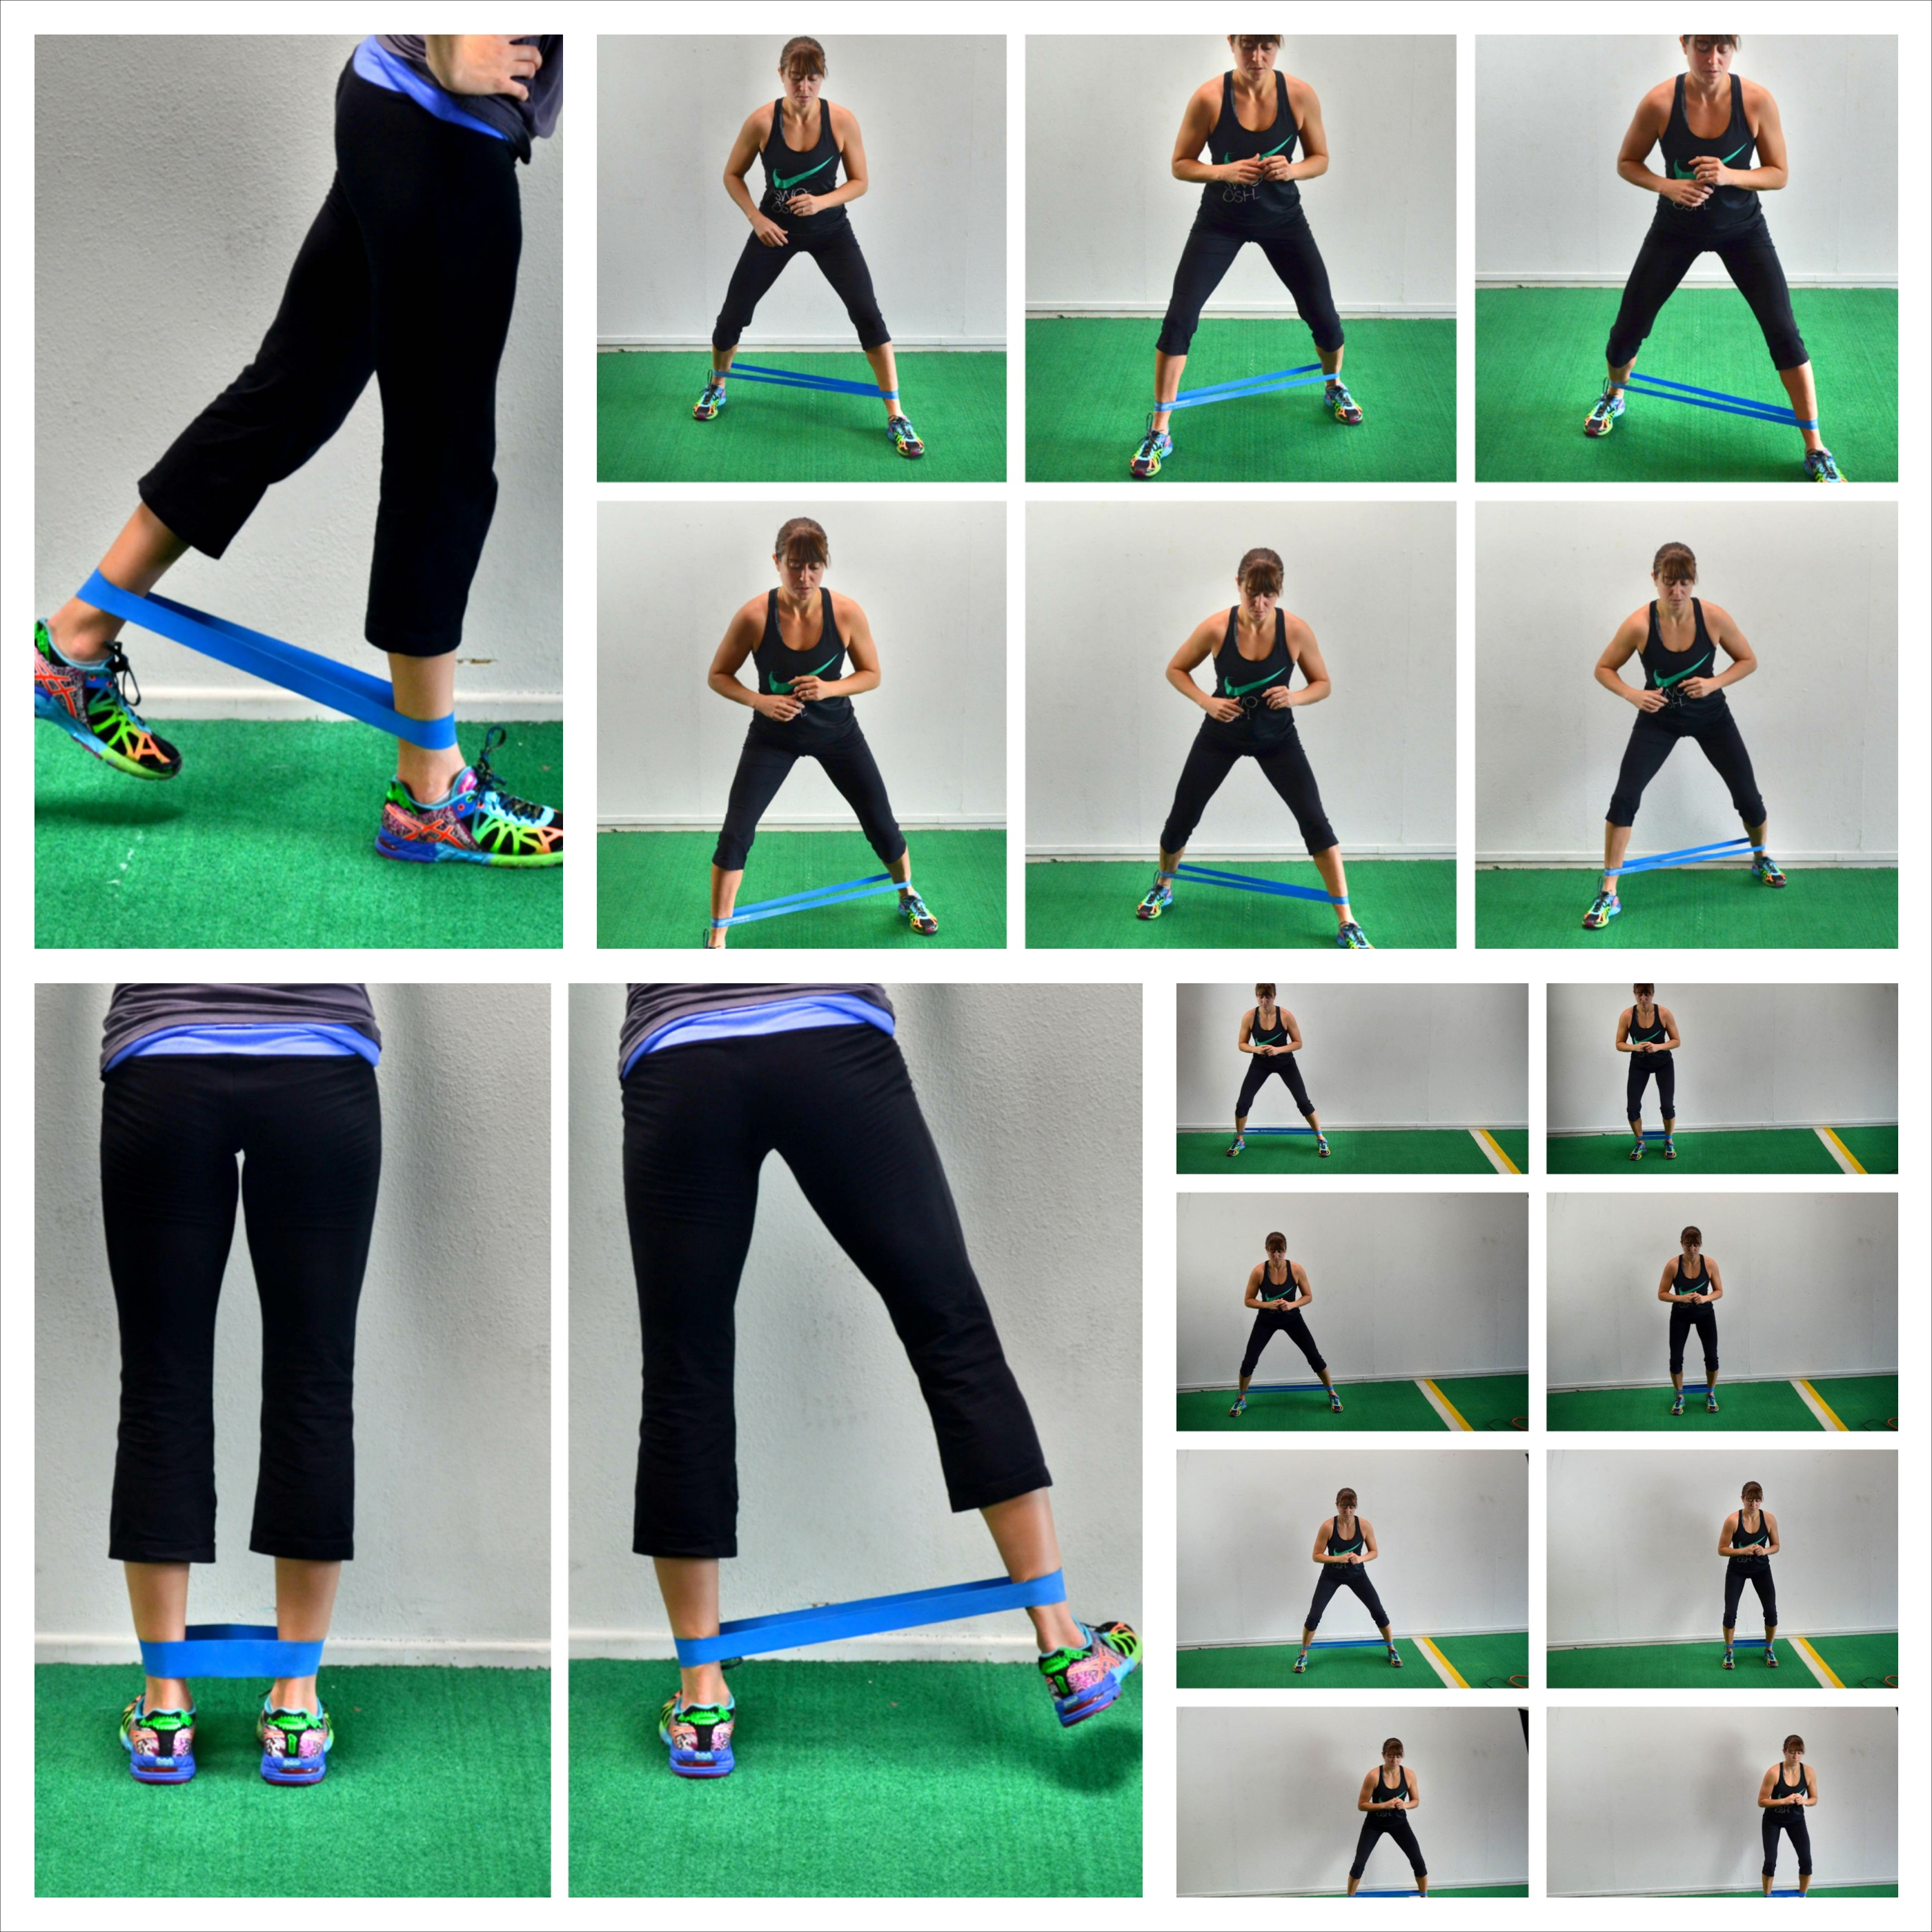 Workout Bands Com: Great Glute Mini Band Moves